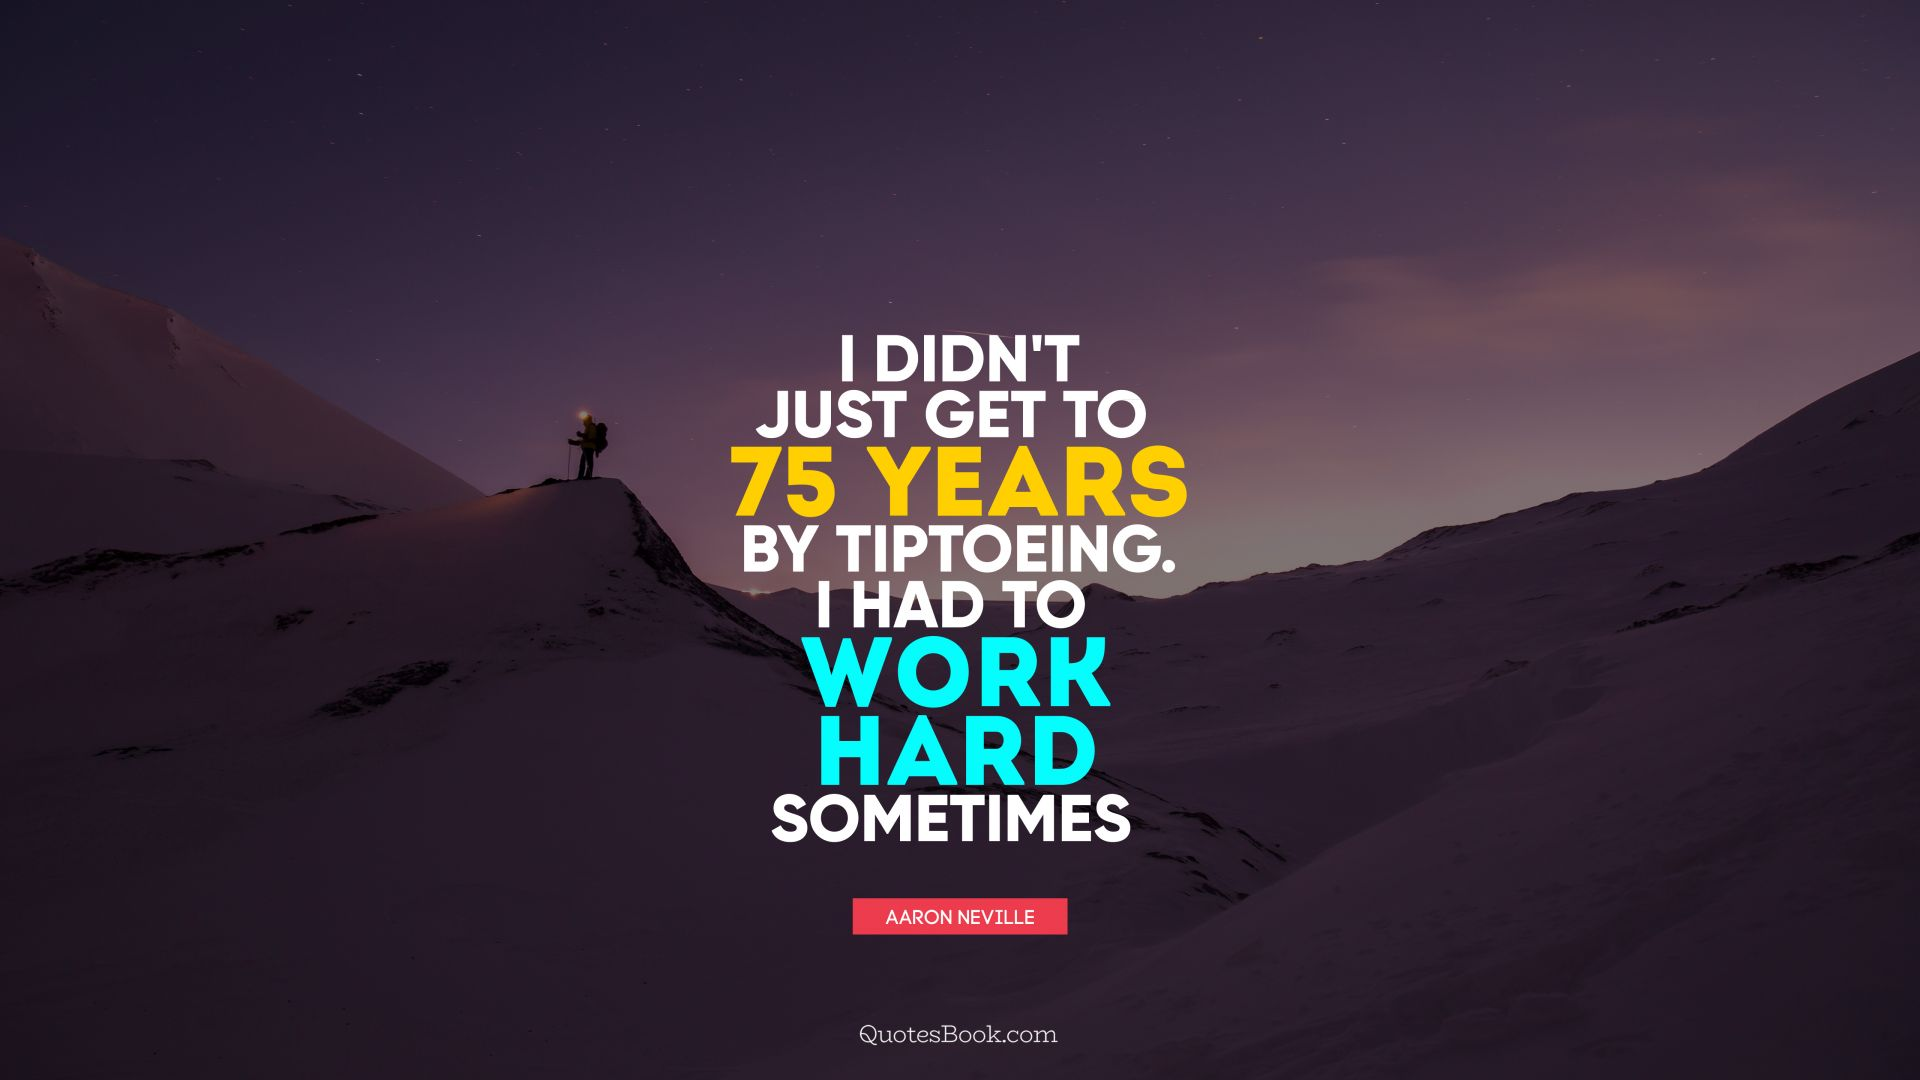 I didn't just get to 75 years by tiptoeing. I had to work hard sometimes. - Quote by Aaron Neville